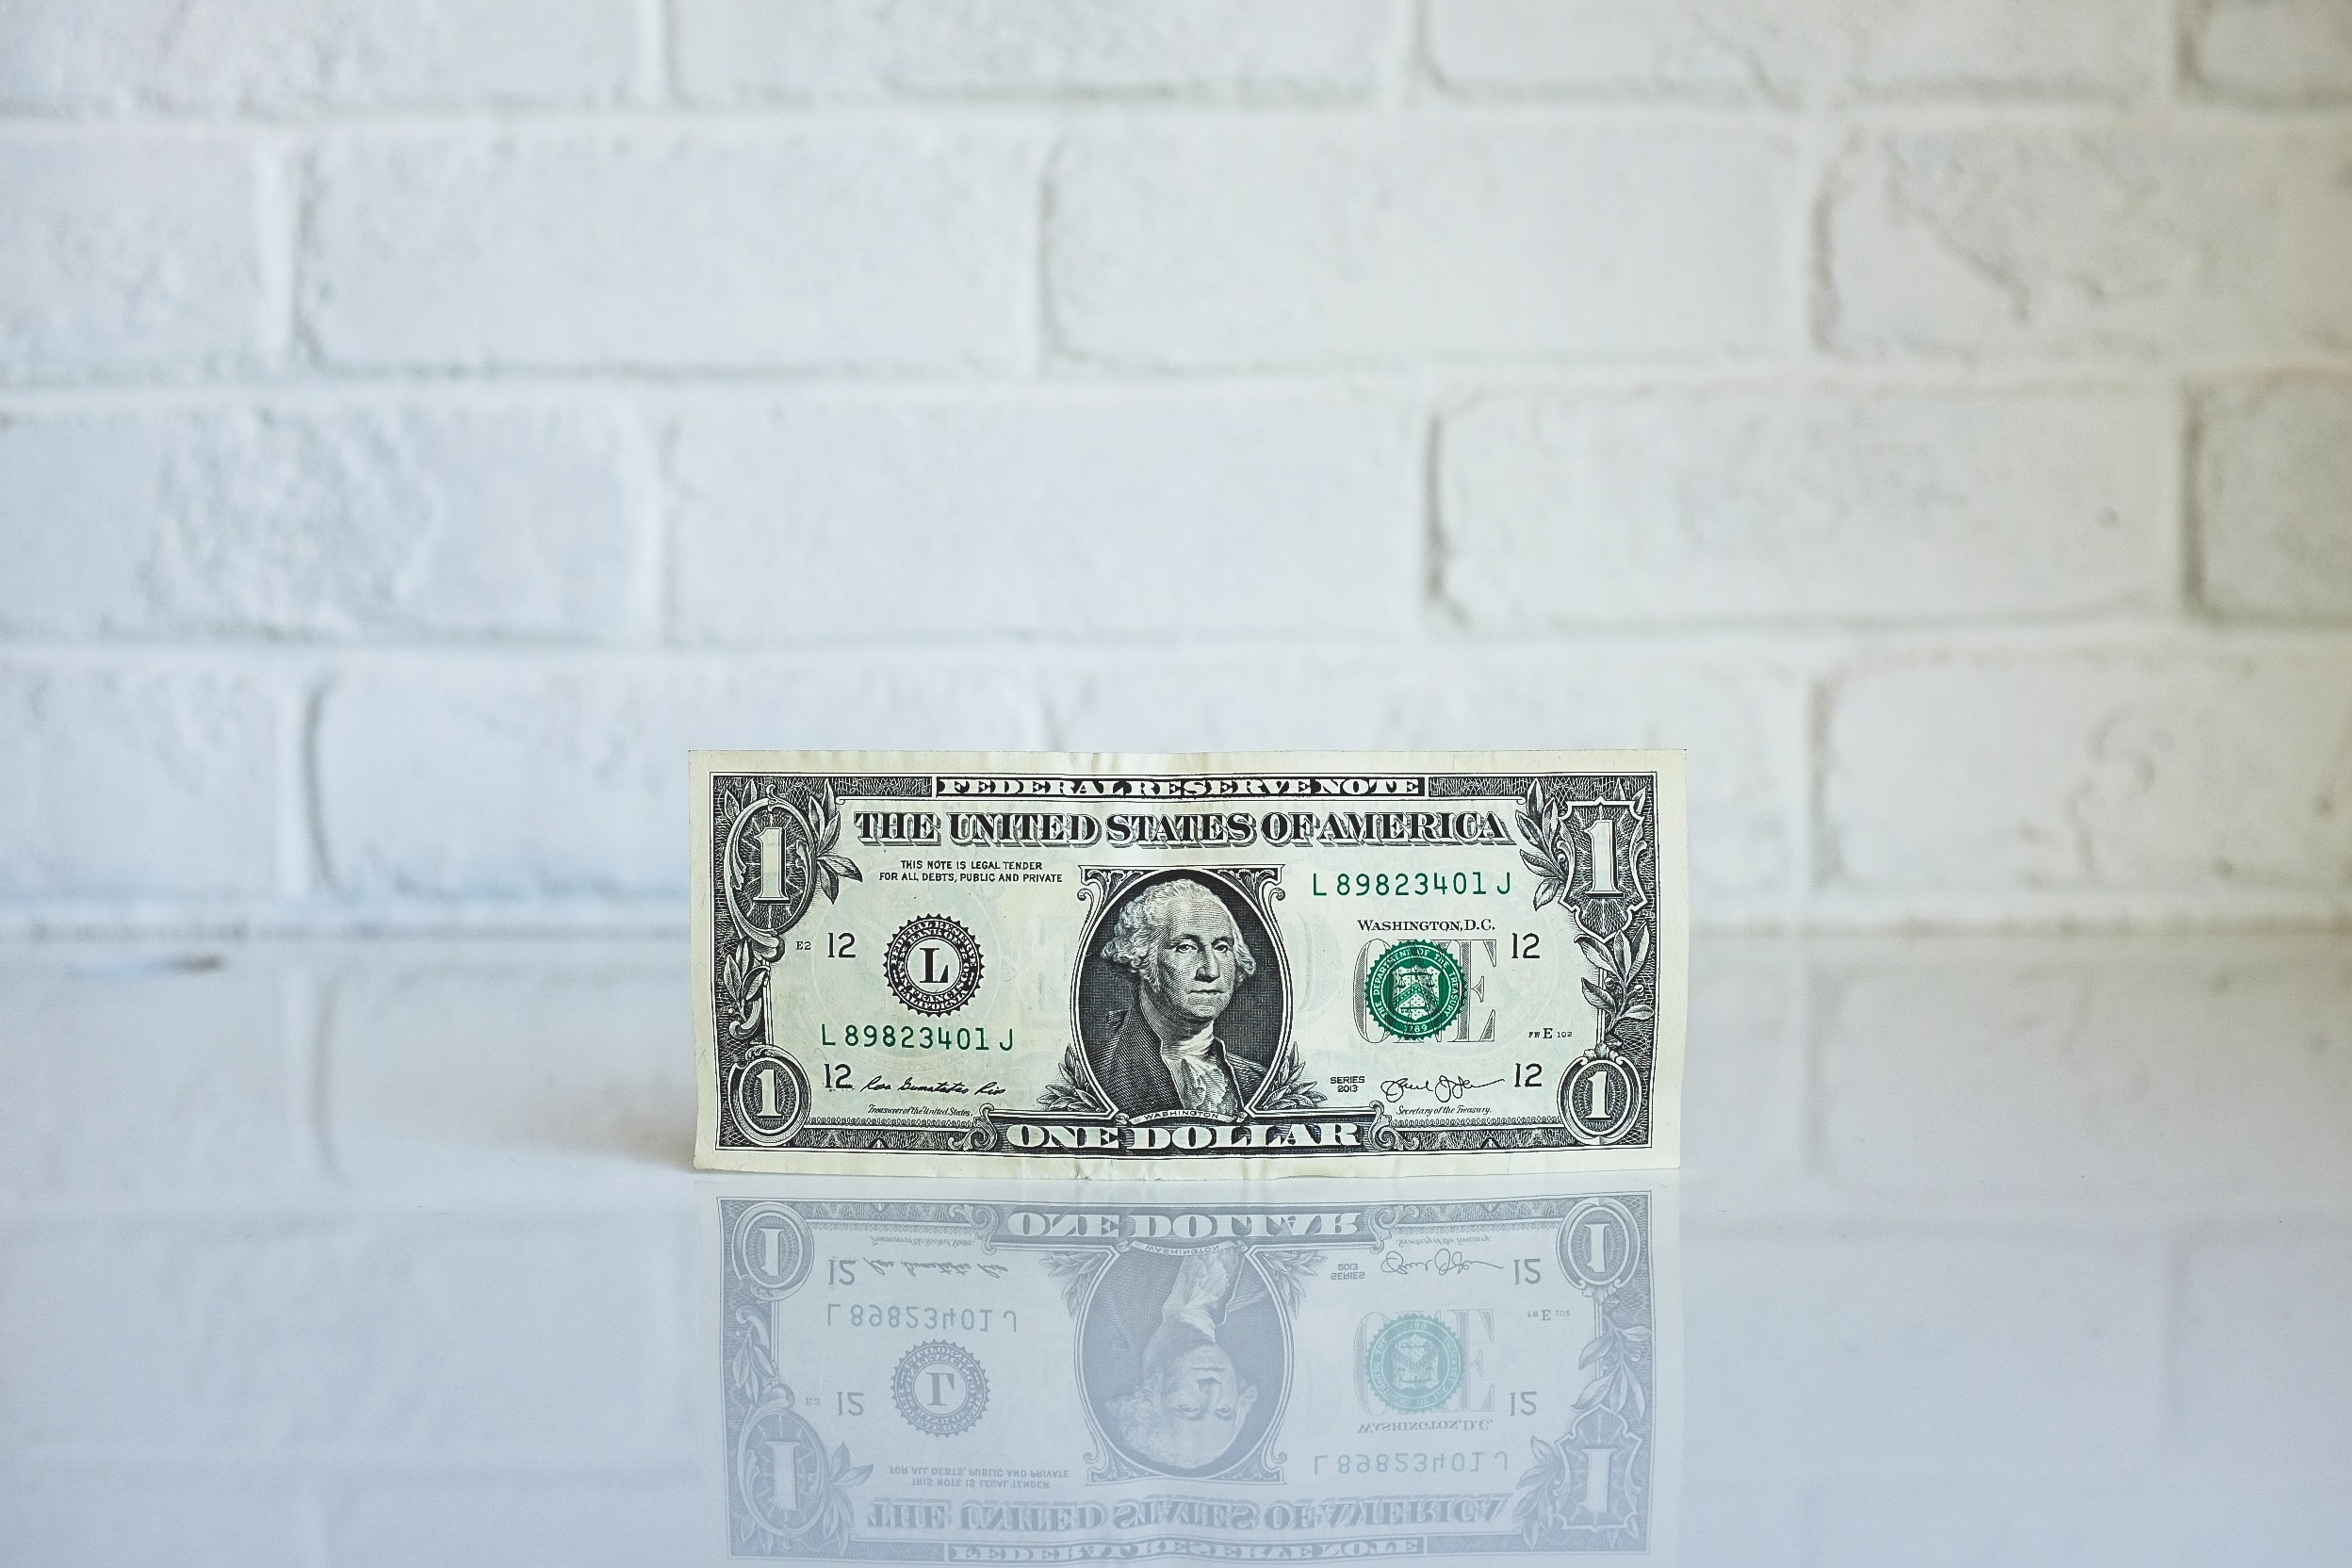 Image of a one dollar bill against a white brick background. Photo by NeONBRAND on Unsplash.